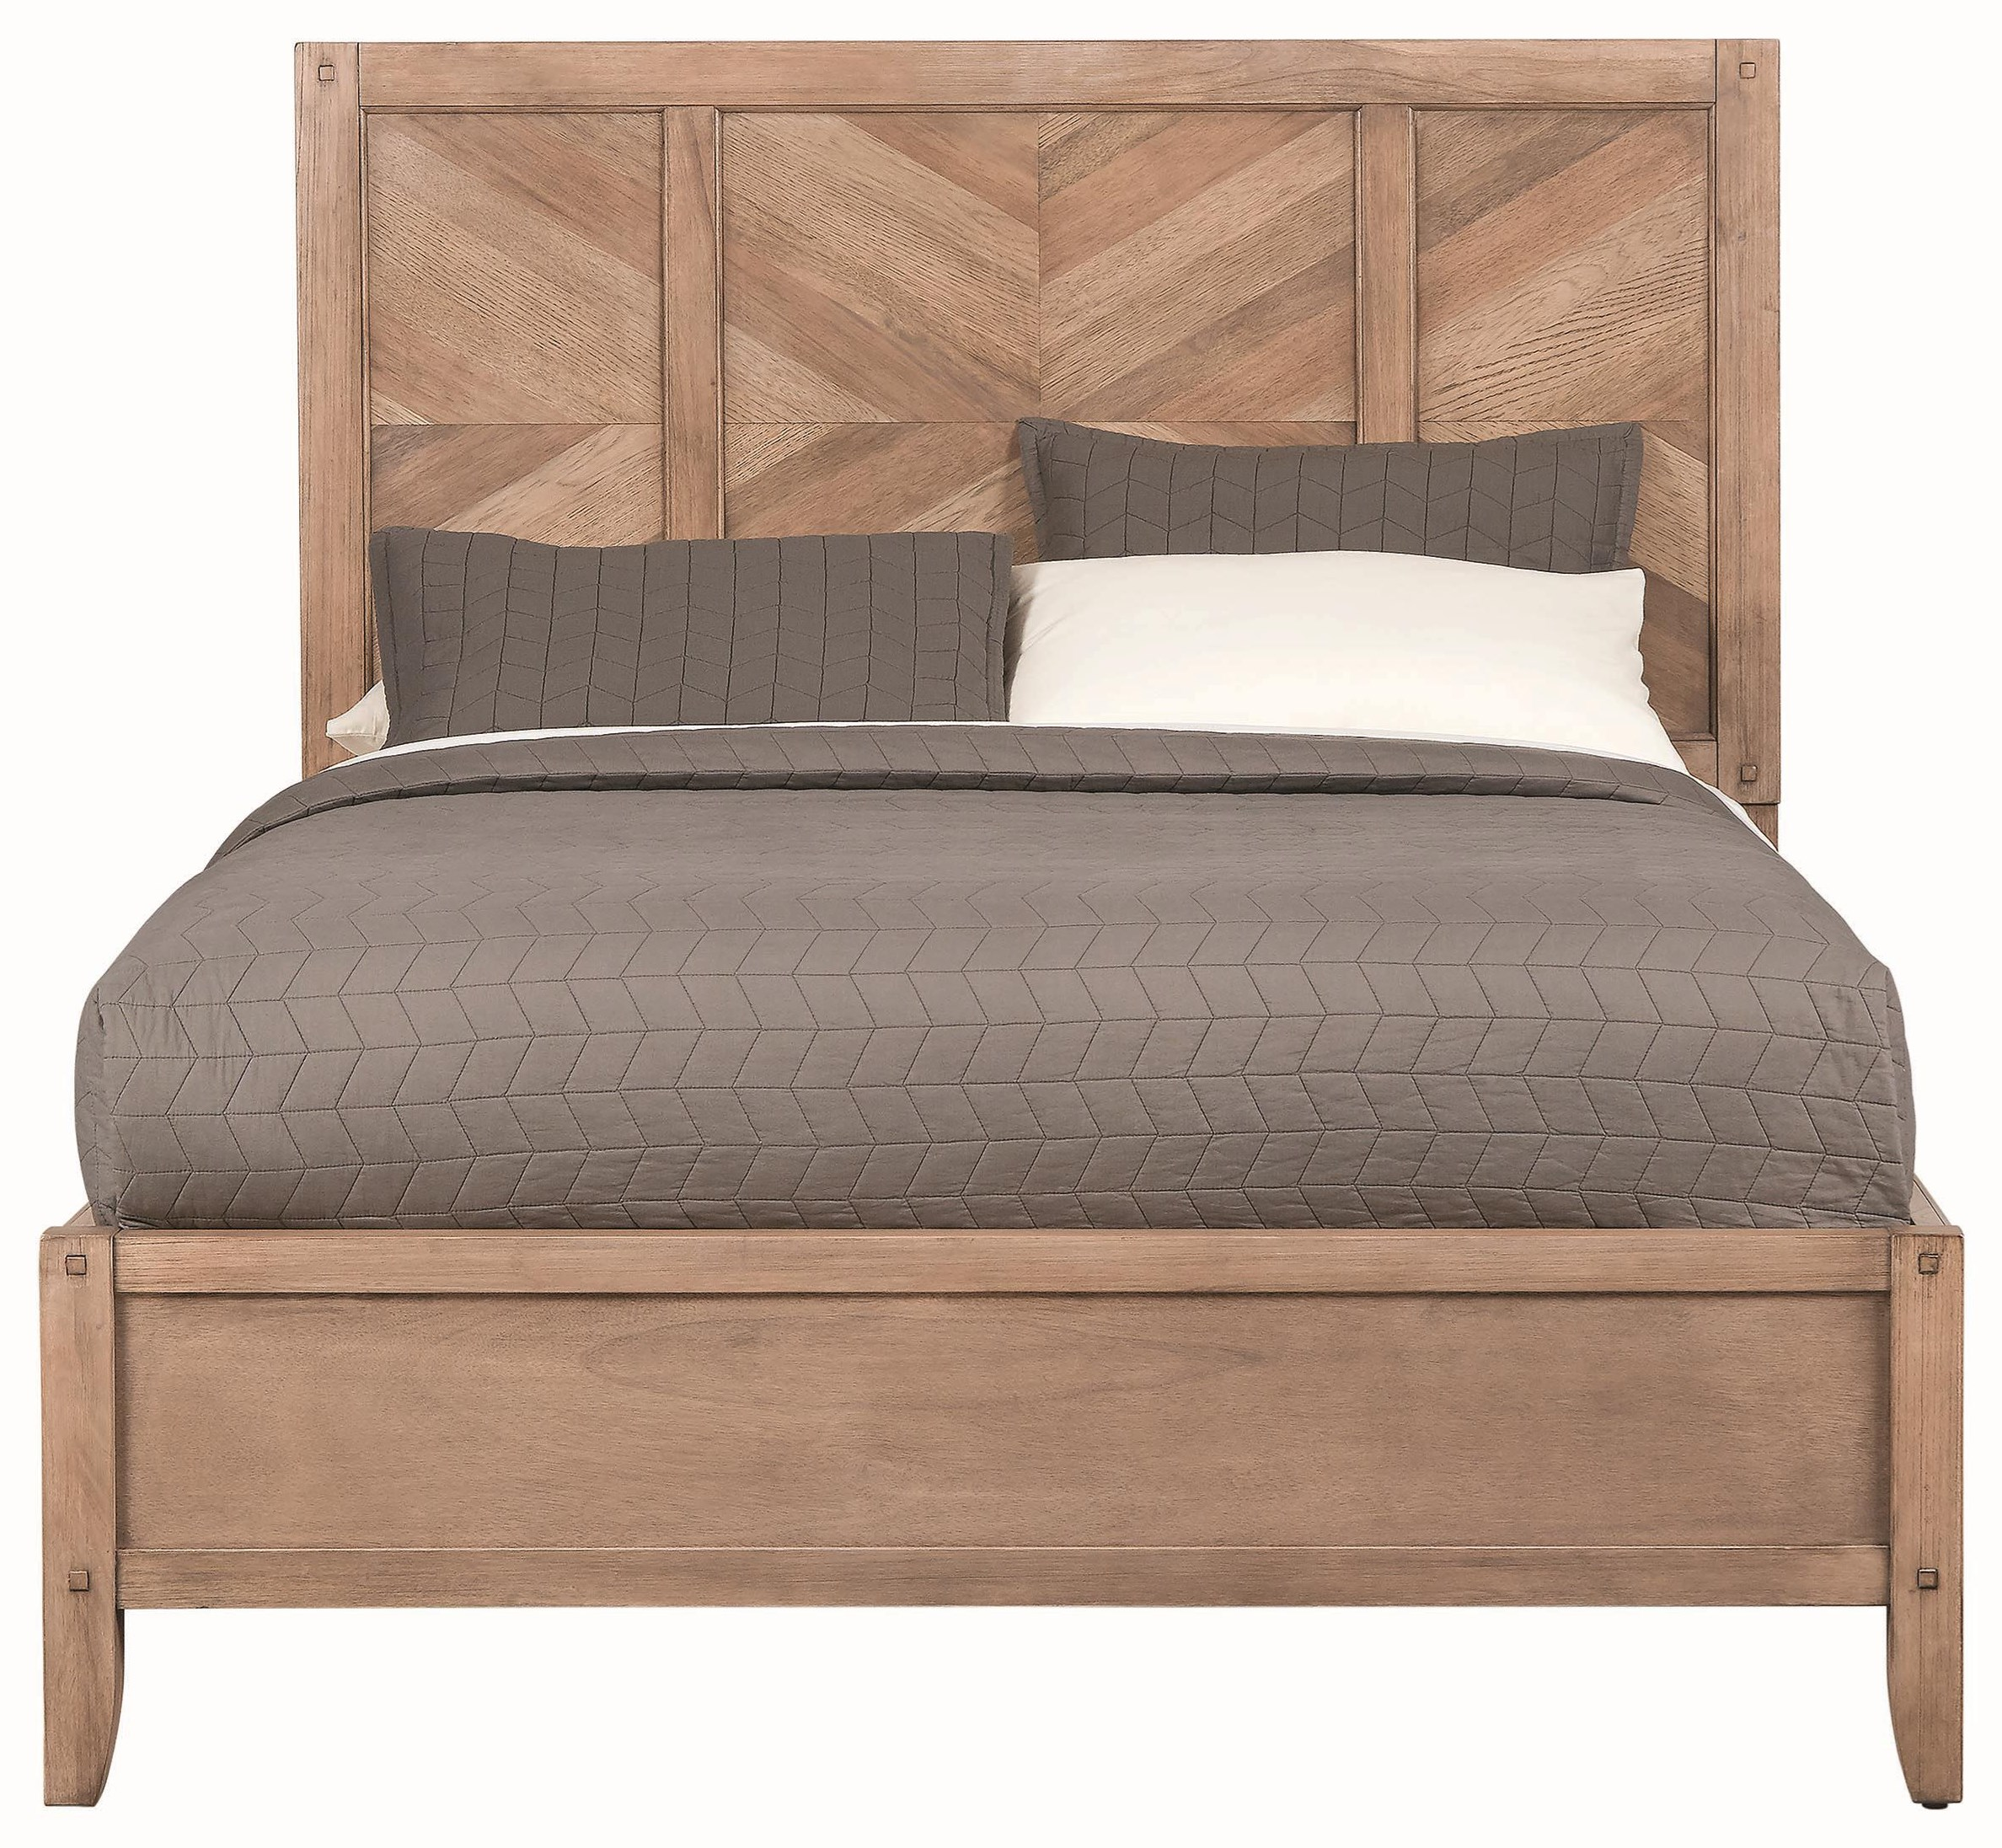 Scott Living Auburn Cal King Bed - Item Number: 204611KW